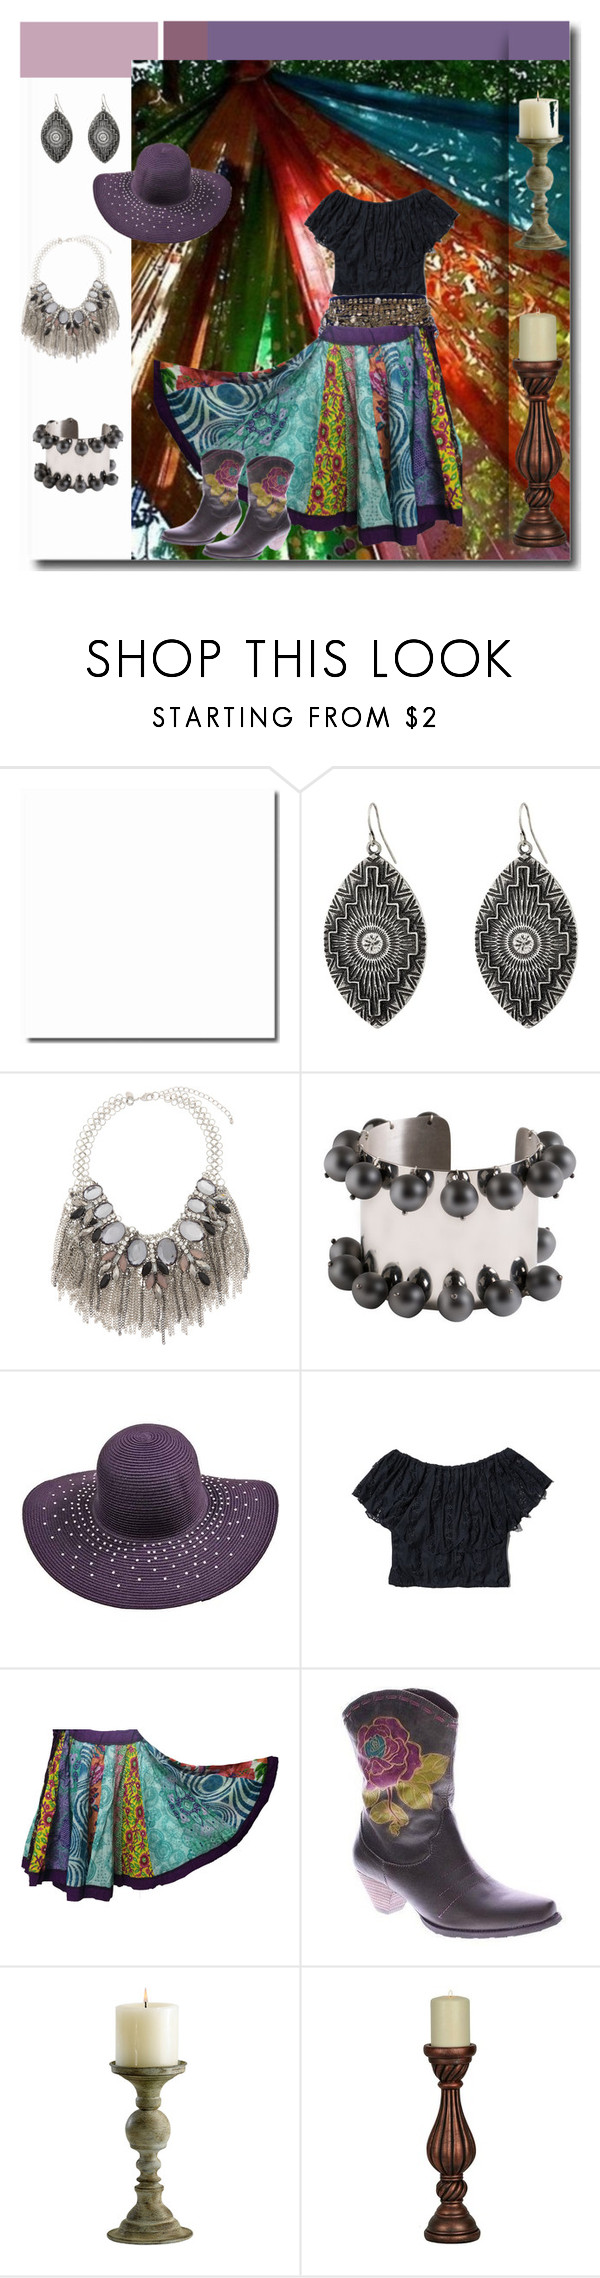 """""""Gypsy Wind"""" by pampire ❤ liked on Polyvore featuring moda, Gypsy SOULE, Eloquii, Abercrombie & Fitch, L'Artiste by Spring Step ve Cyan Design"""